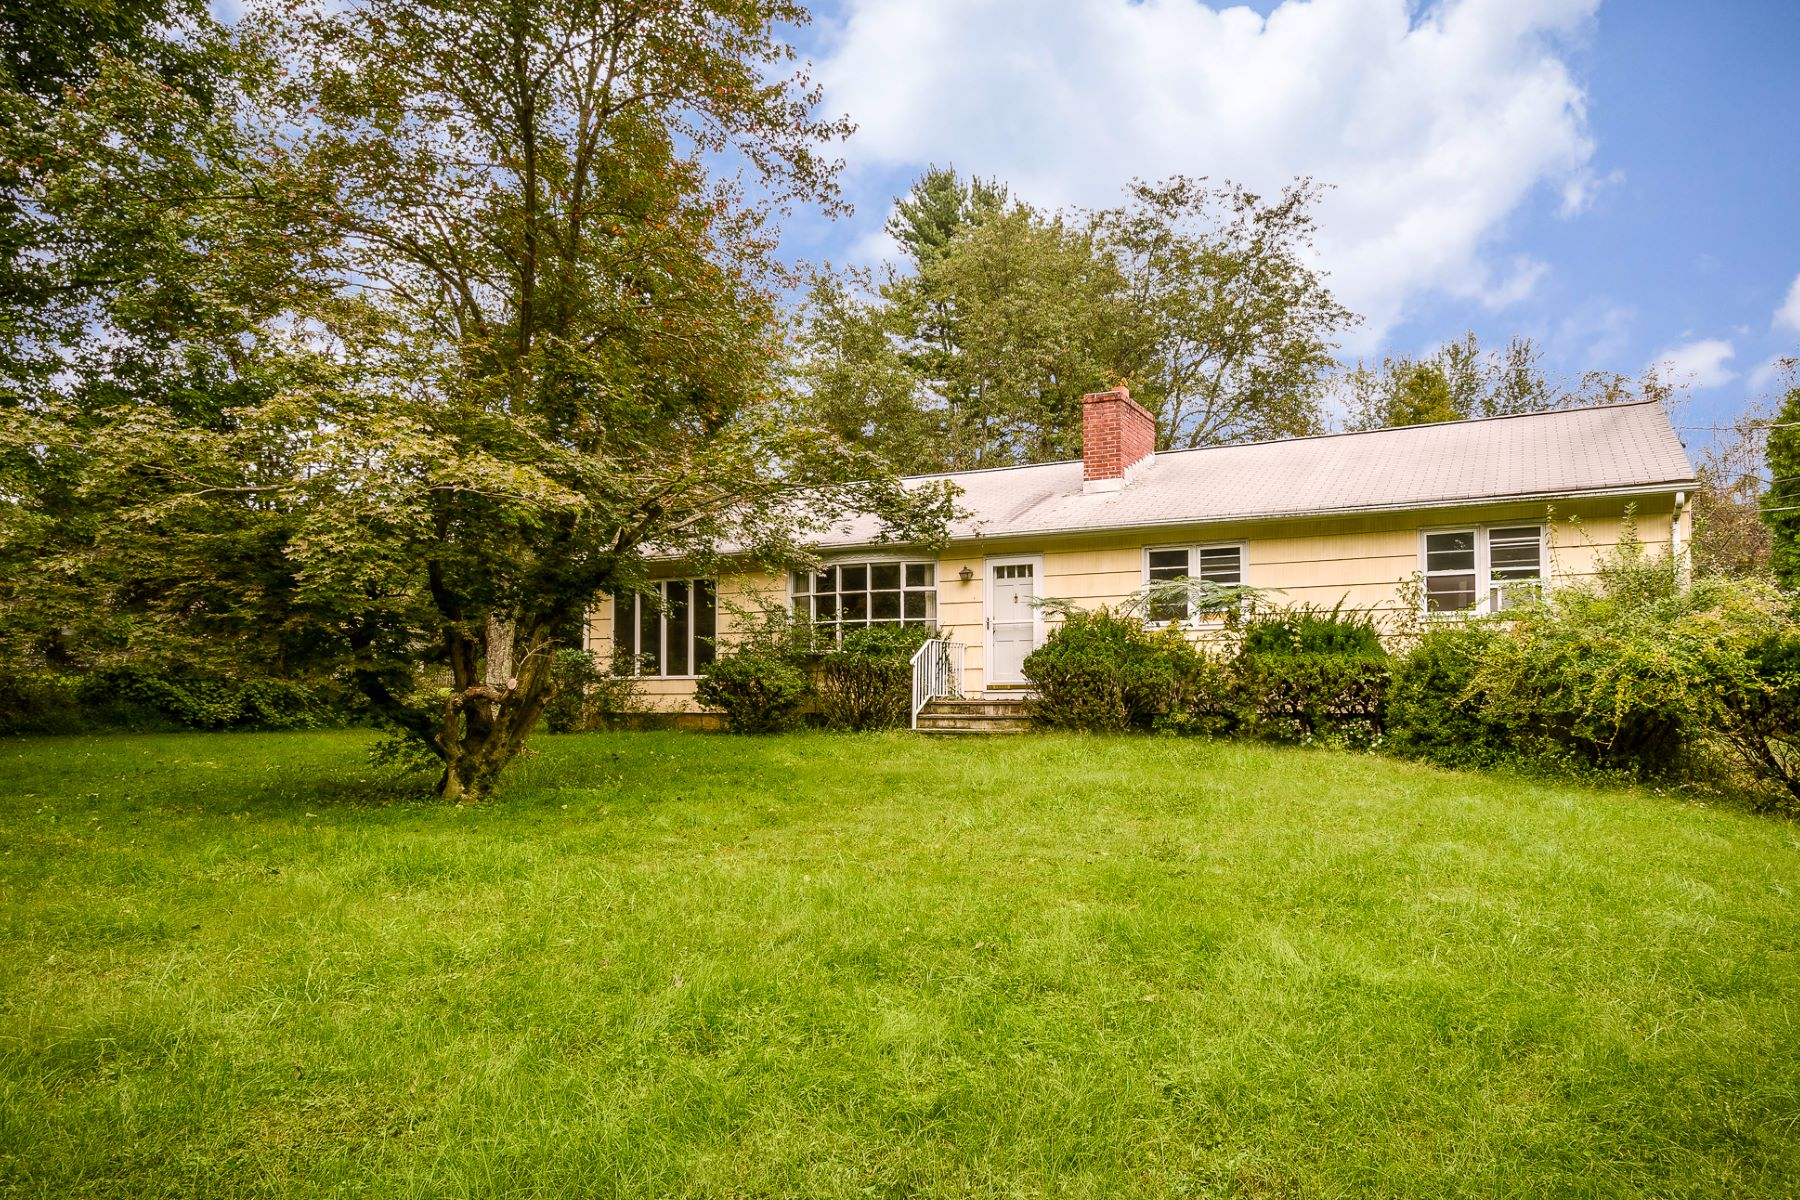 Single Family Home for Sale at Improve And Capitalize! 14 Cleveland Circle, Skillman, New Jersey 08558 United States